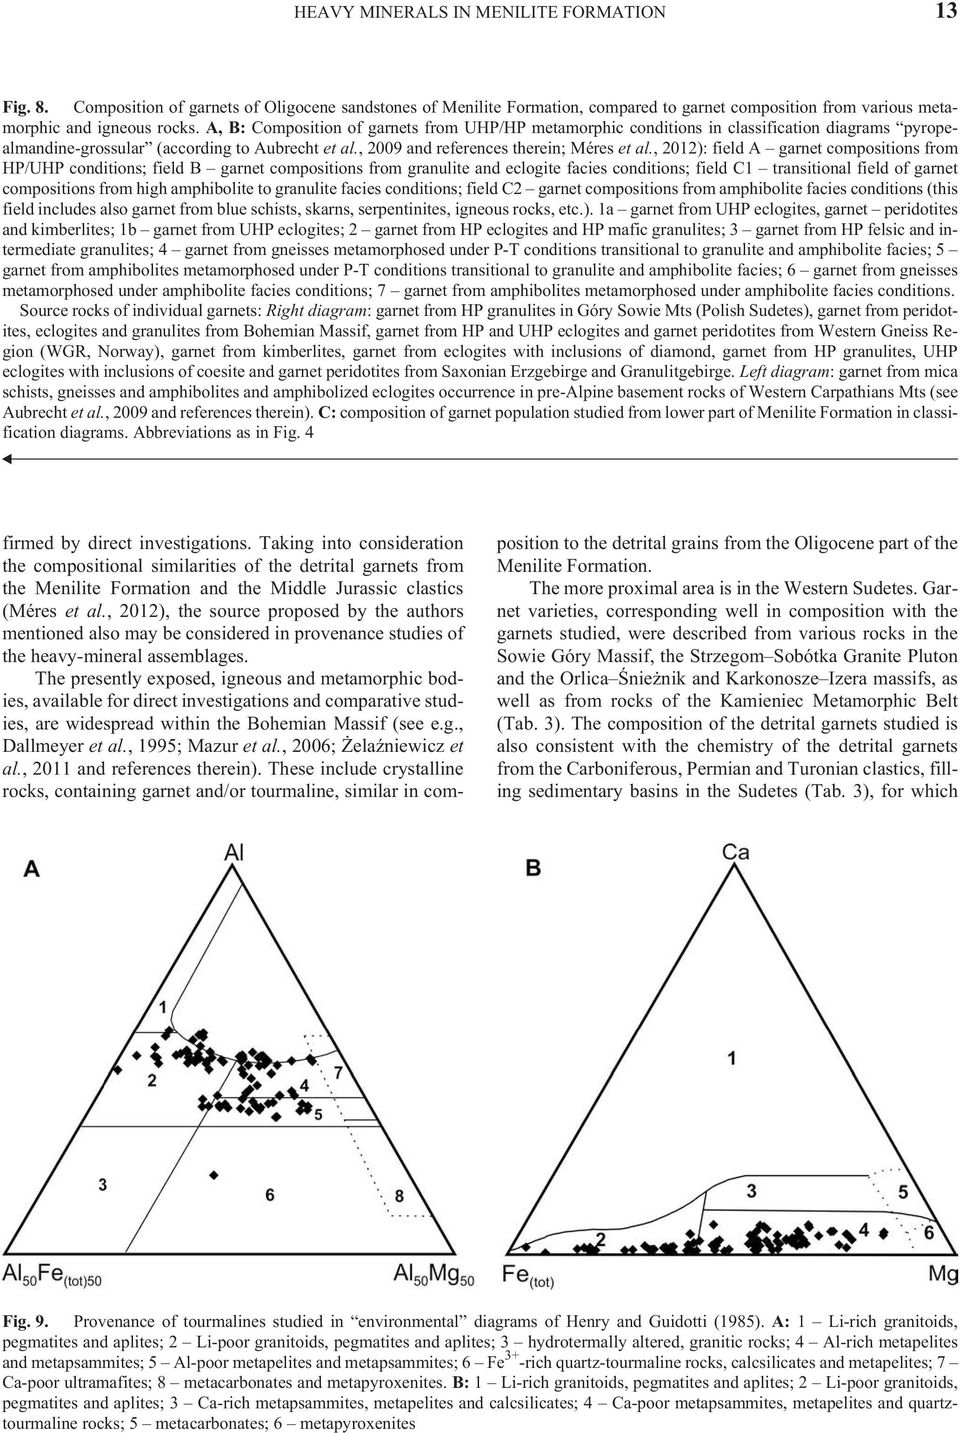 A, B: Com po si tion of gar nets from UHP/HP metamorphic conditions in classification diagrams pyropealmandine-grossular (ac cord ing to Aubrecht et al., 2009 and ref er ences therein; Méres et al.